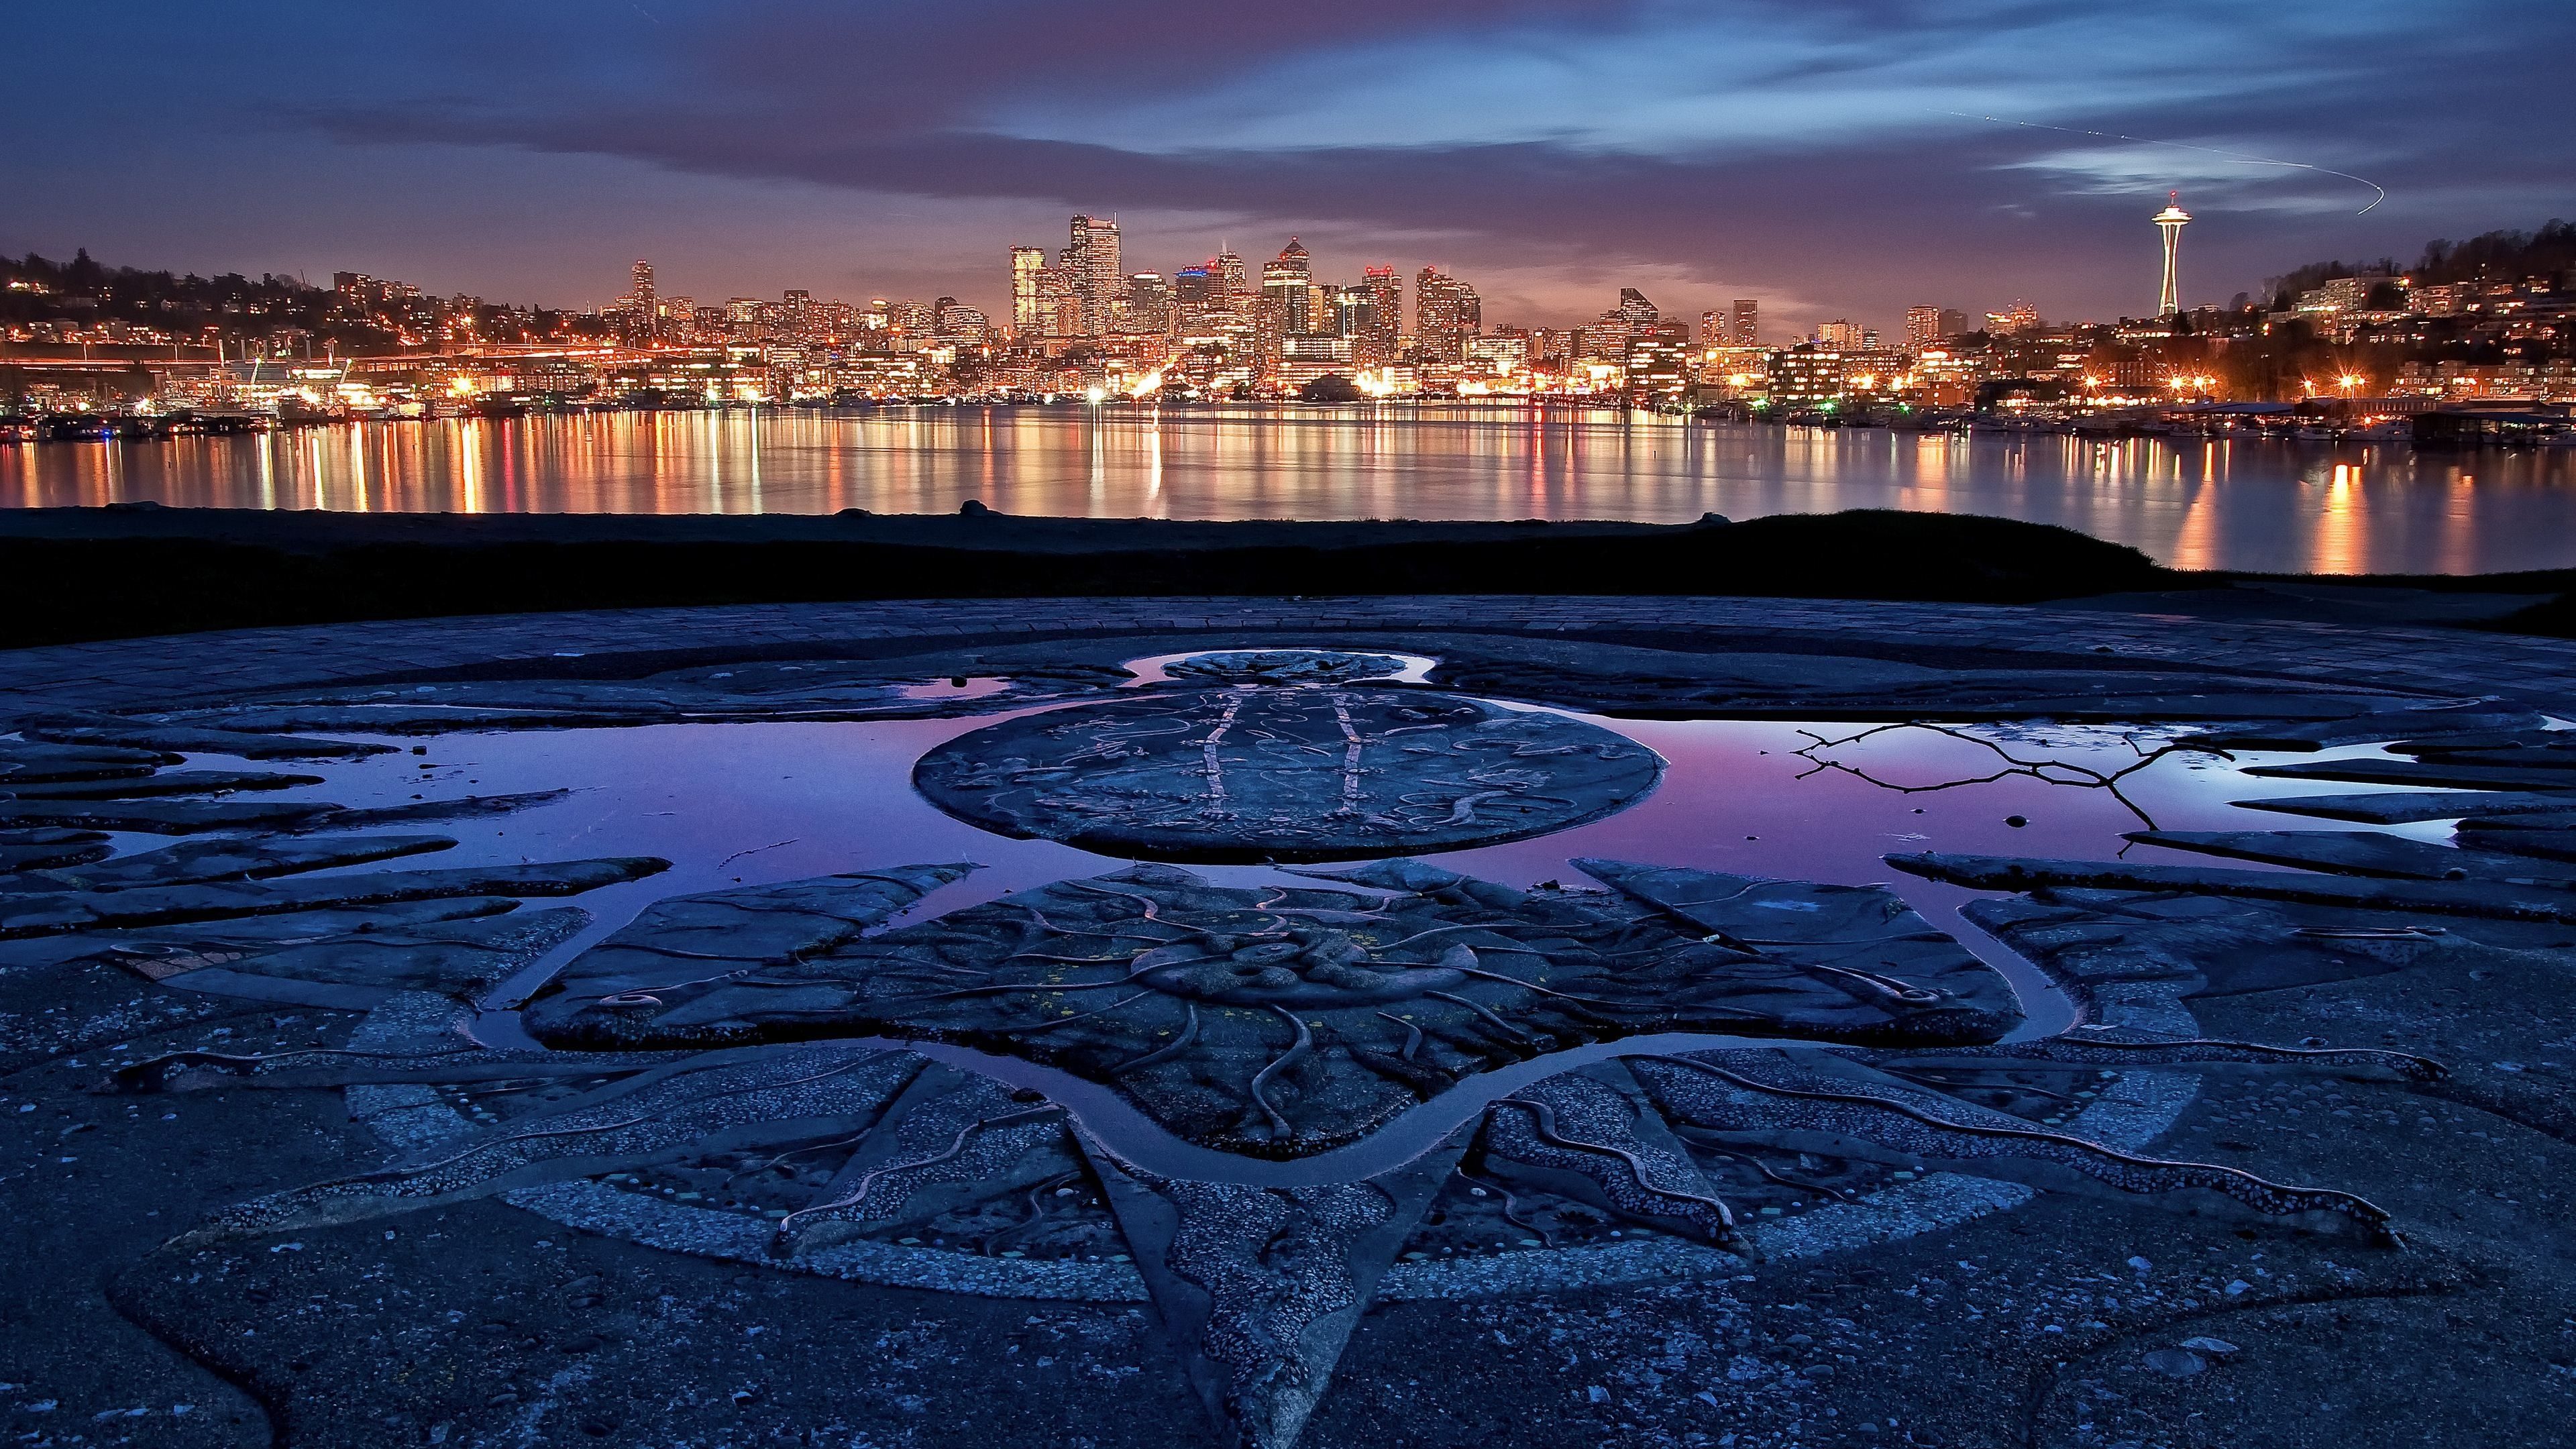 Seattle Night Water Lights Ultra Hd Wallpaper Imgprix